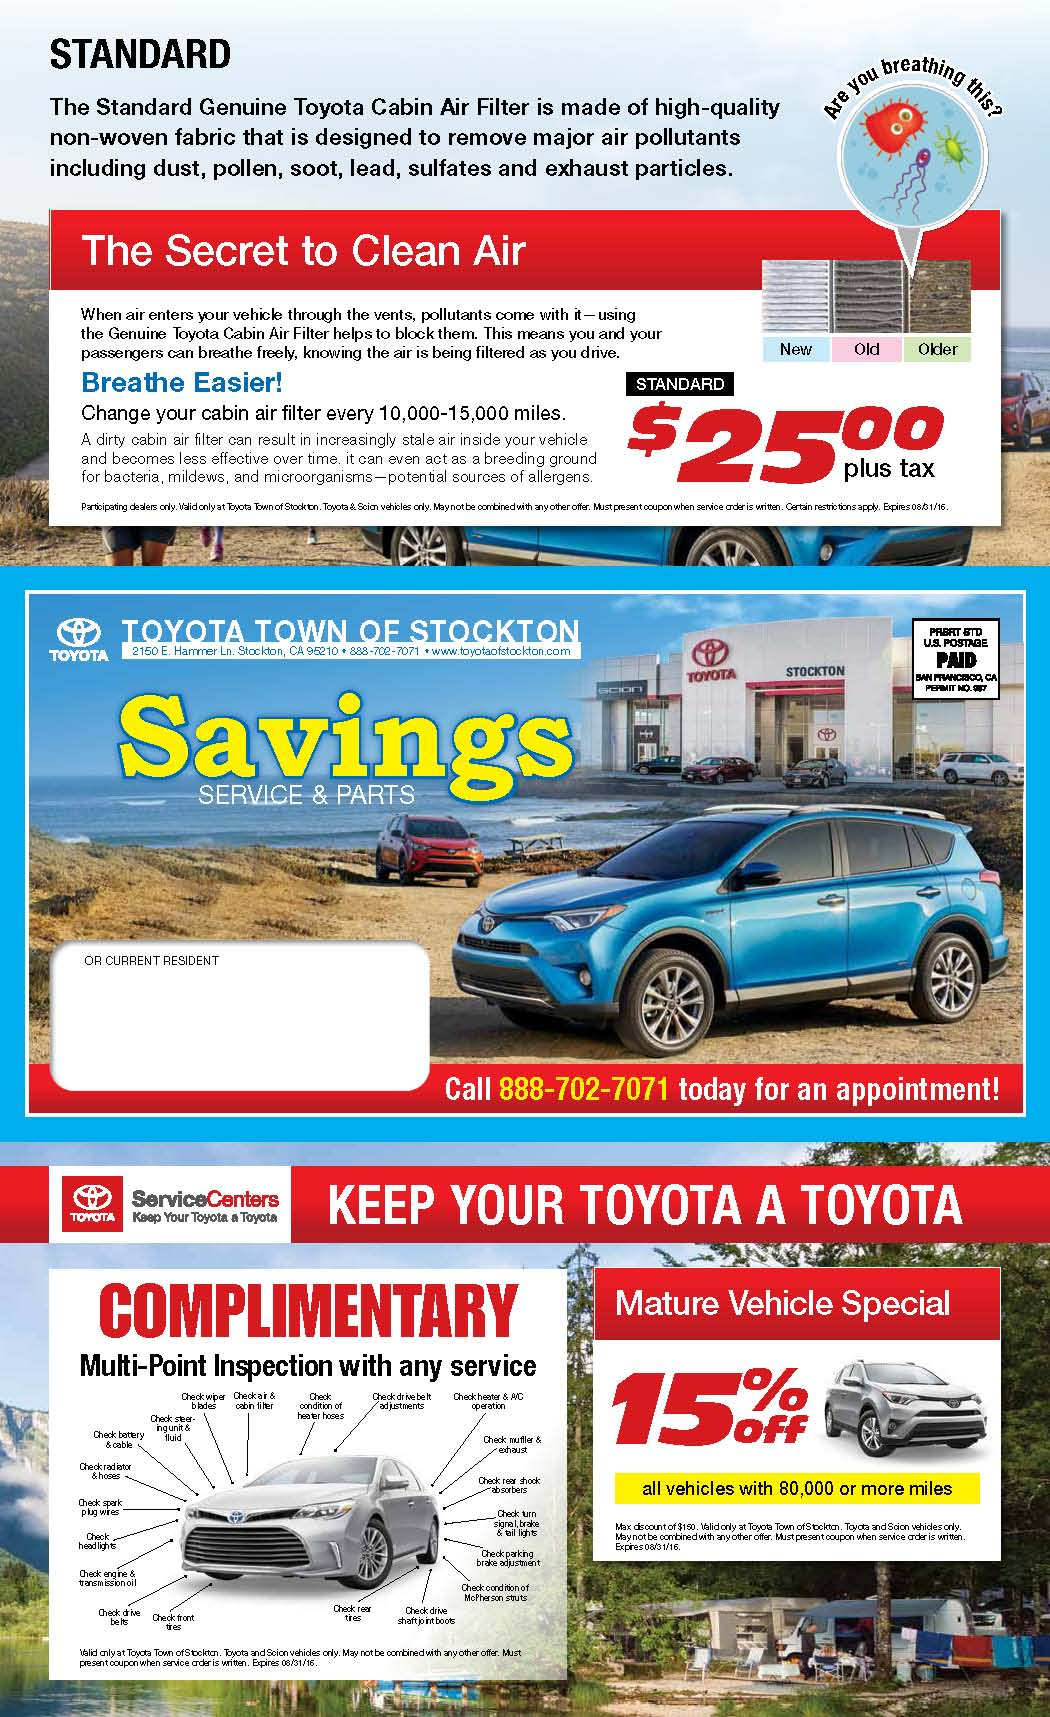 Toyota Town of Stockton - Service and Parts Specials ...